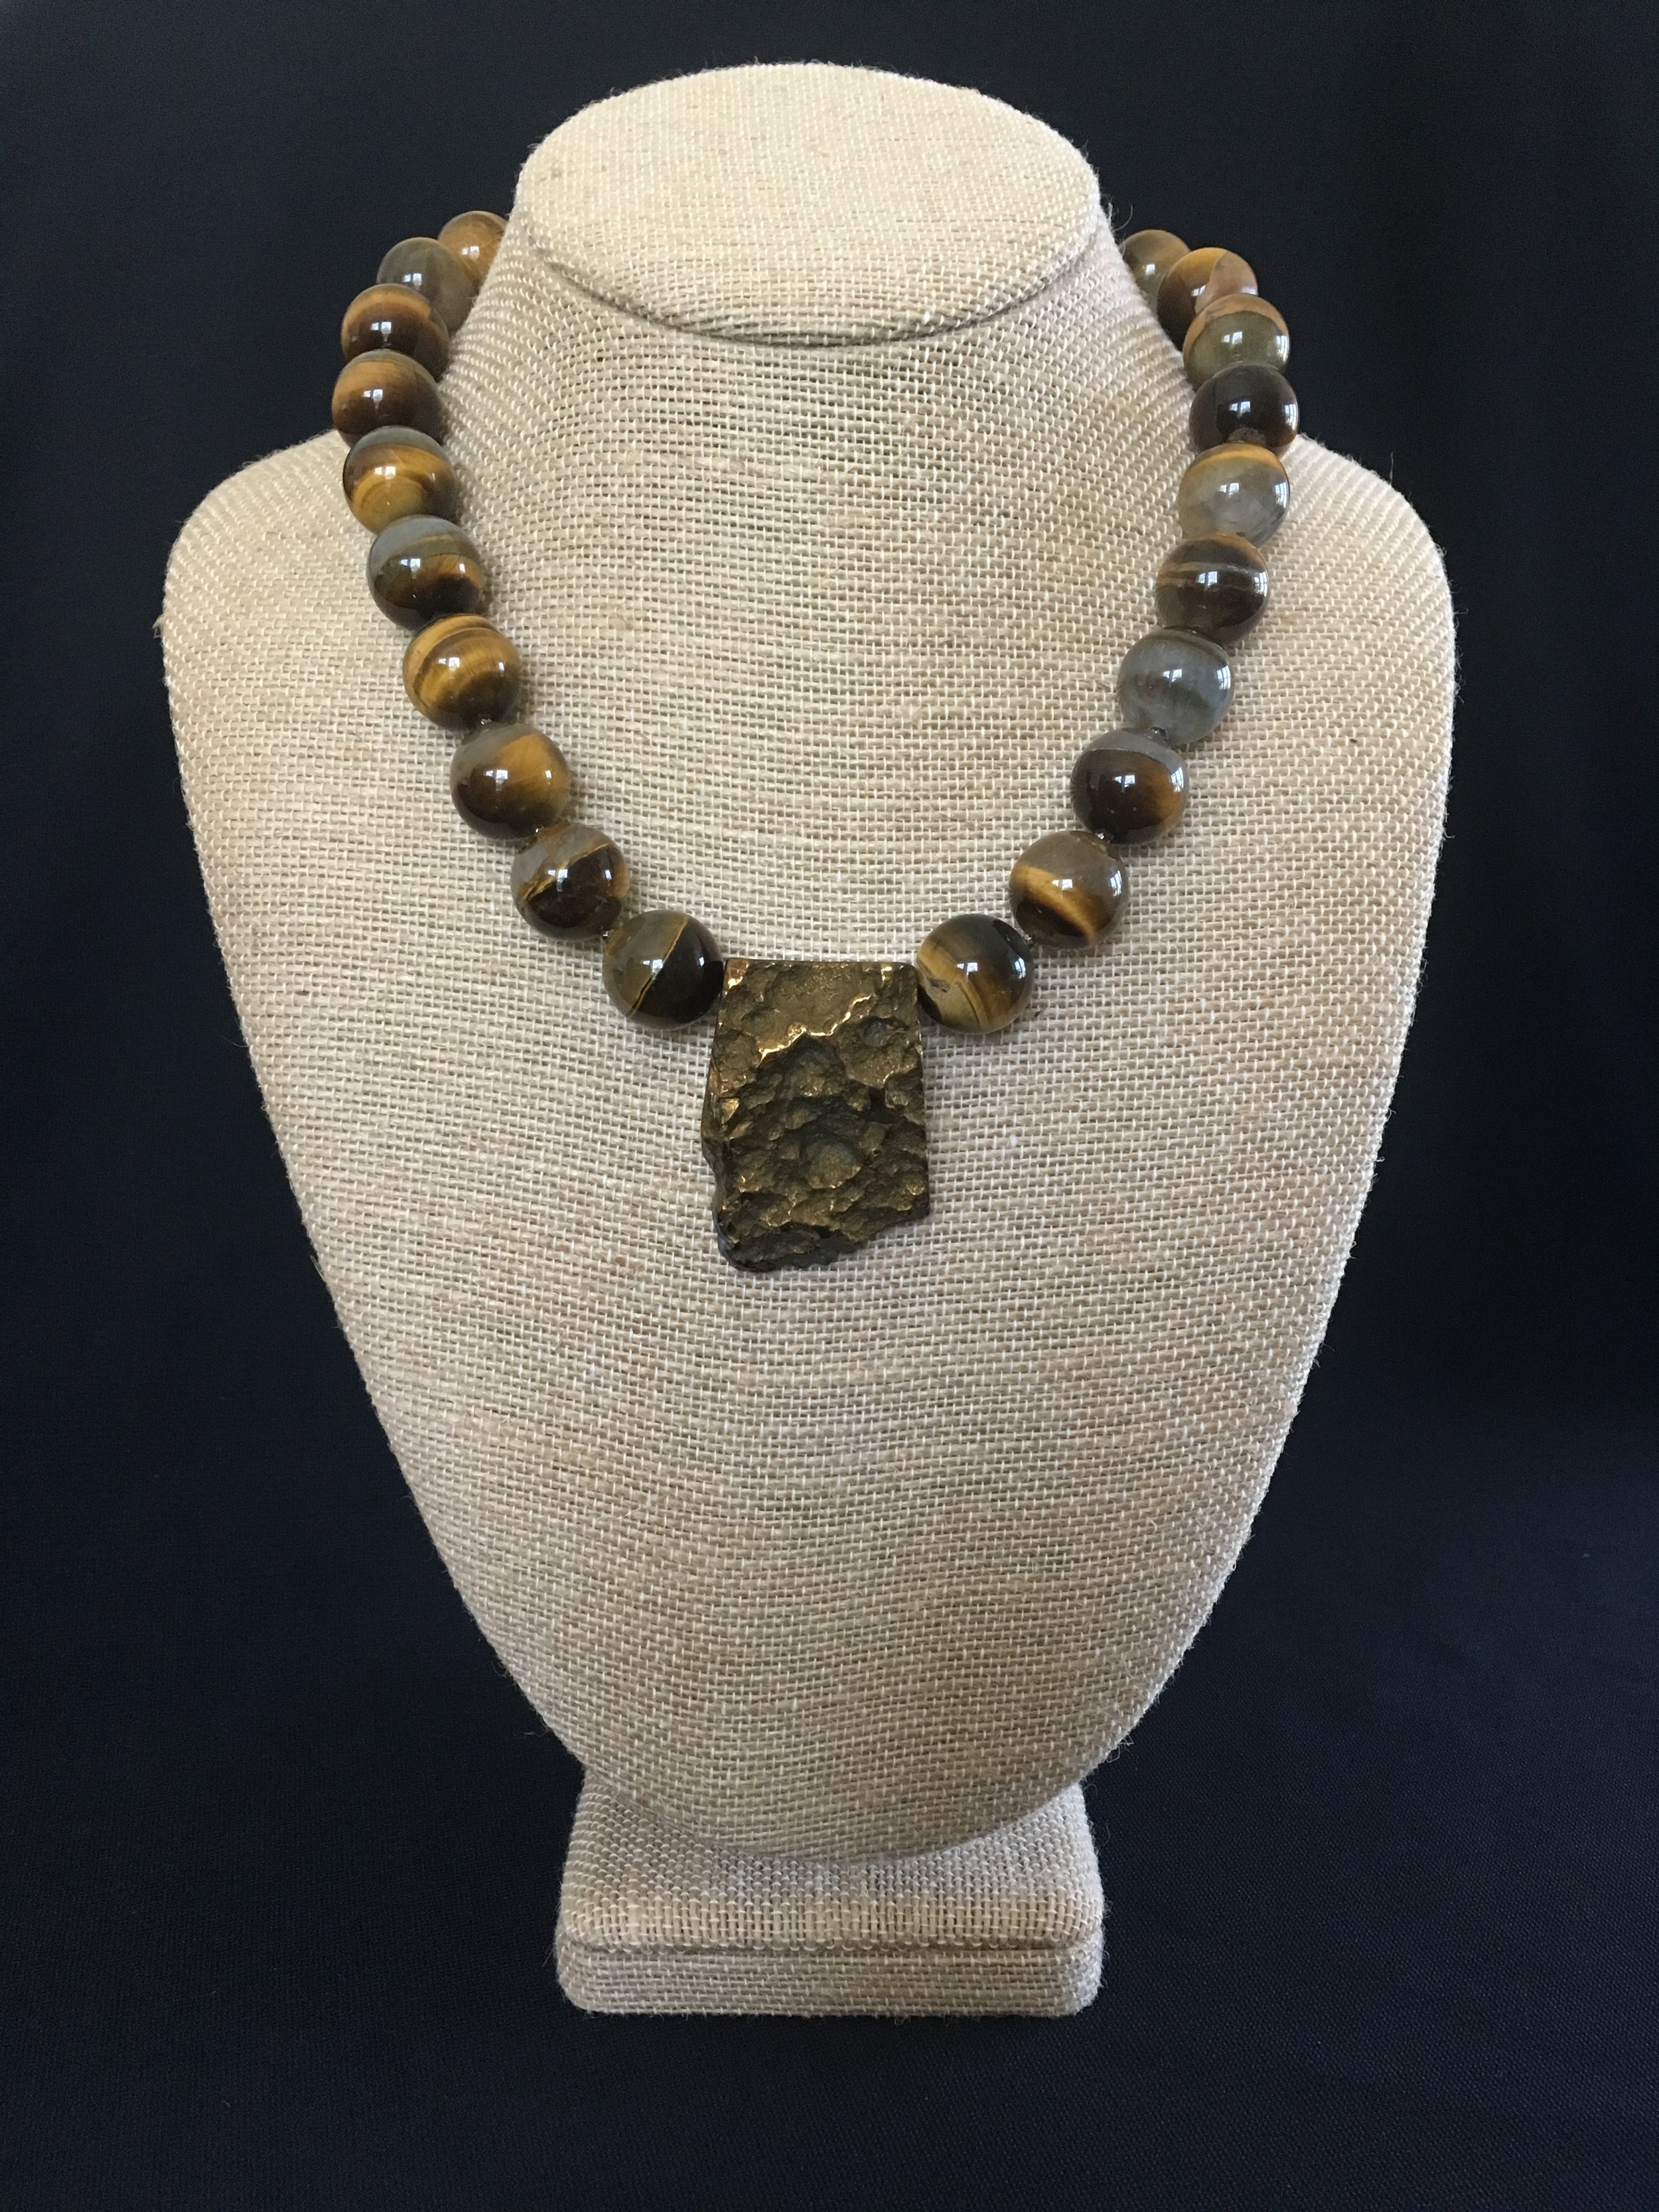 "Gold plated quartz center, tiger eye with sterling clasp. 18"" $125"